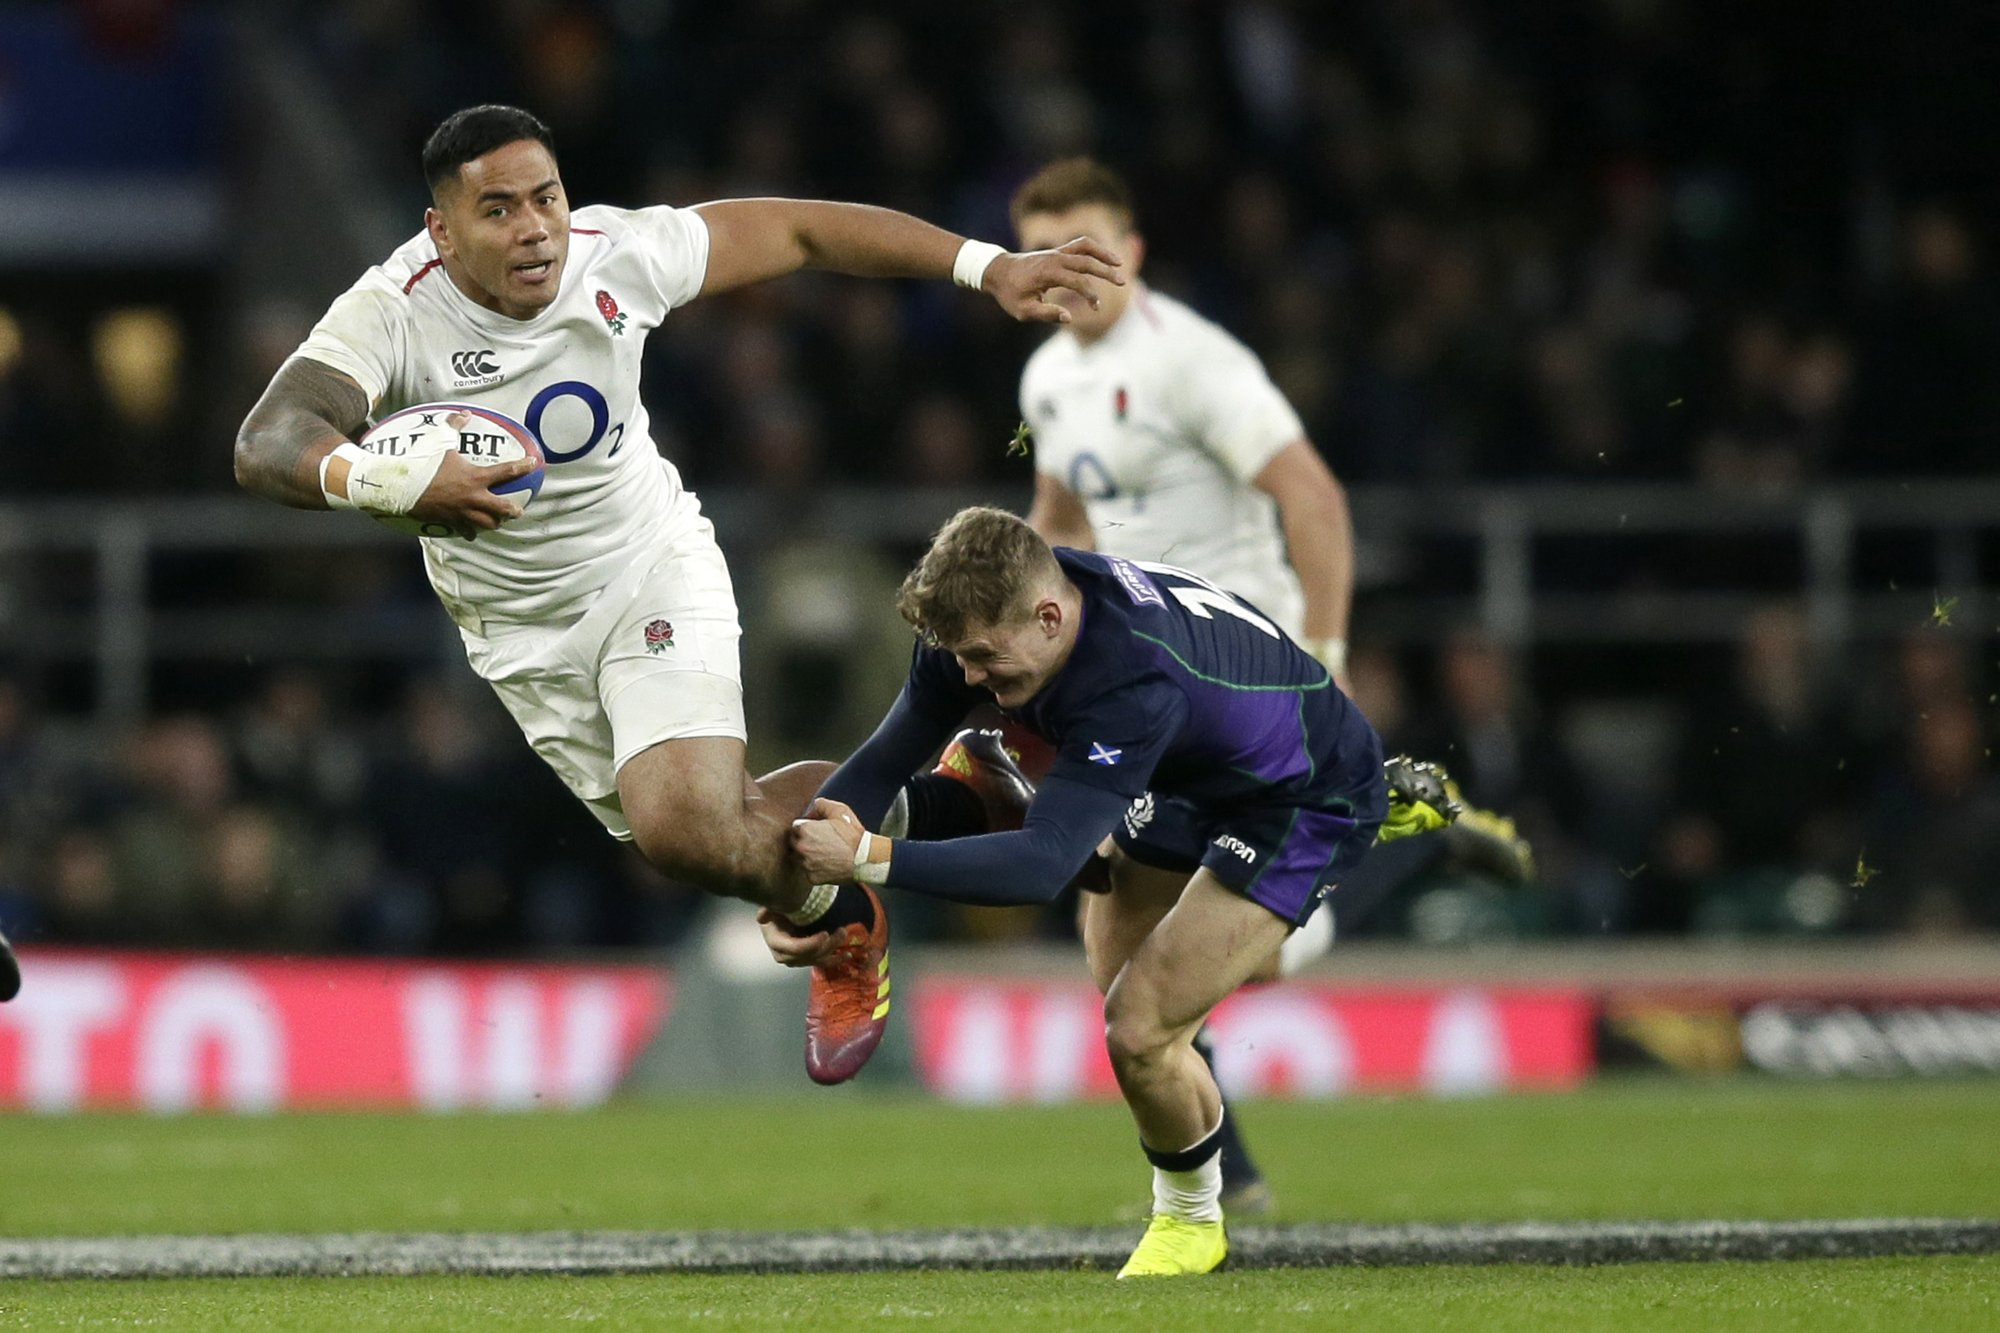 Players to watch at the Rugby World Cup